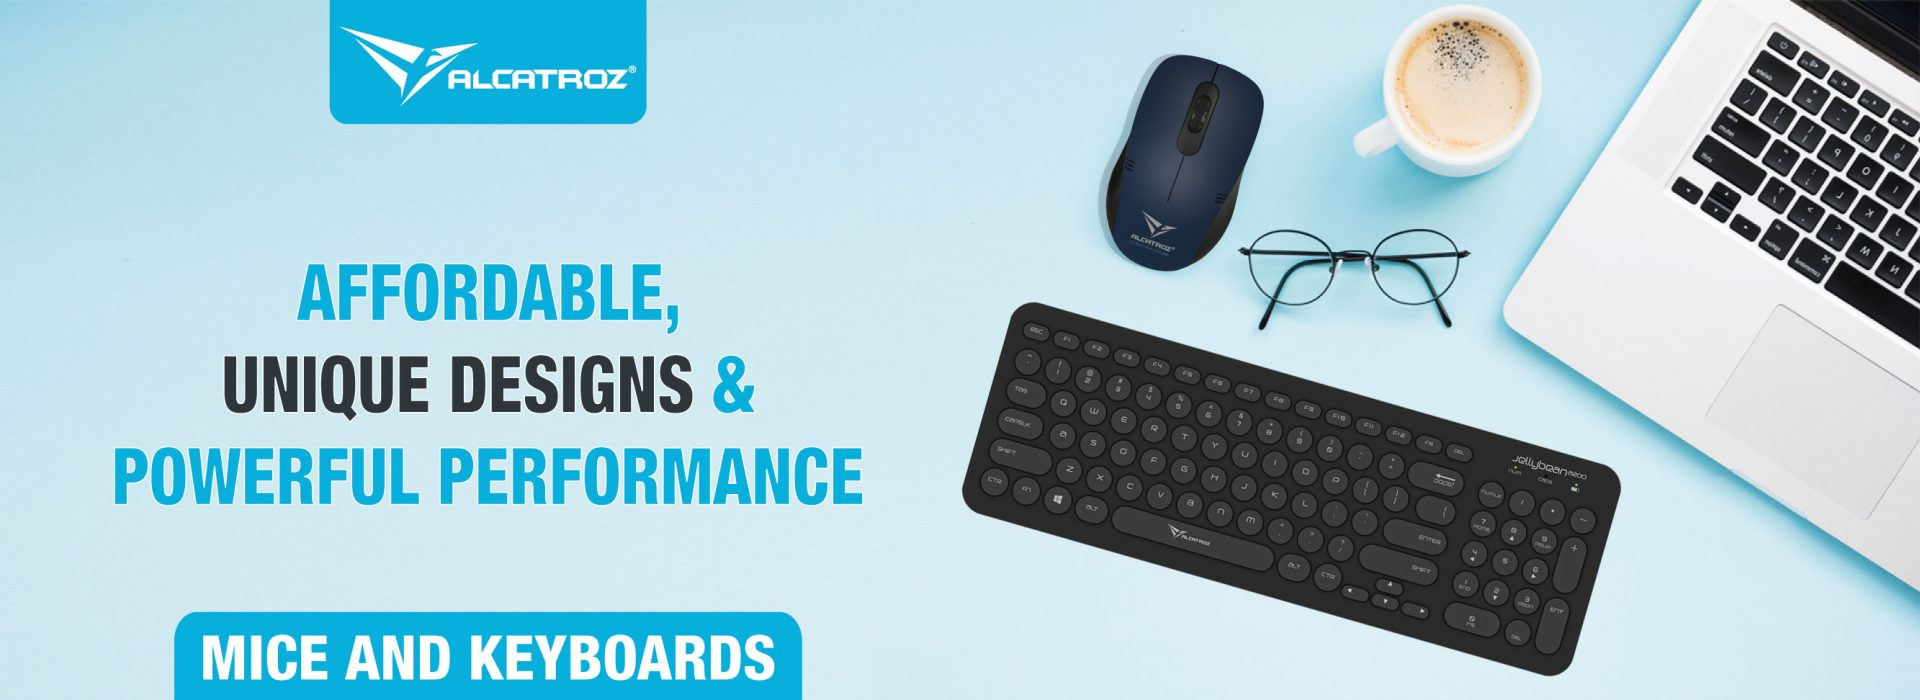 Alcatroz_Pakistan_Mice_And_Keyboards